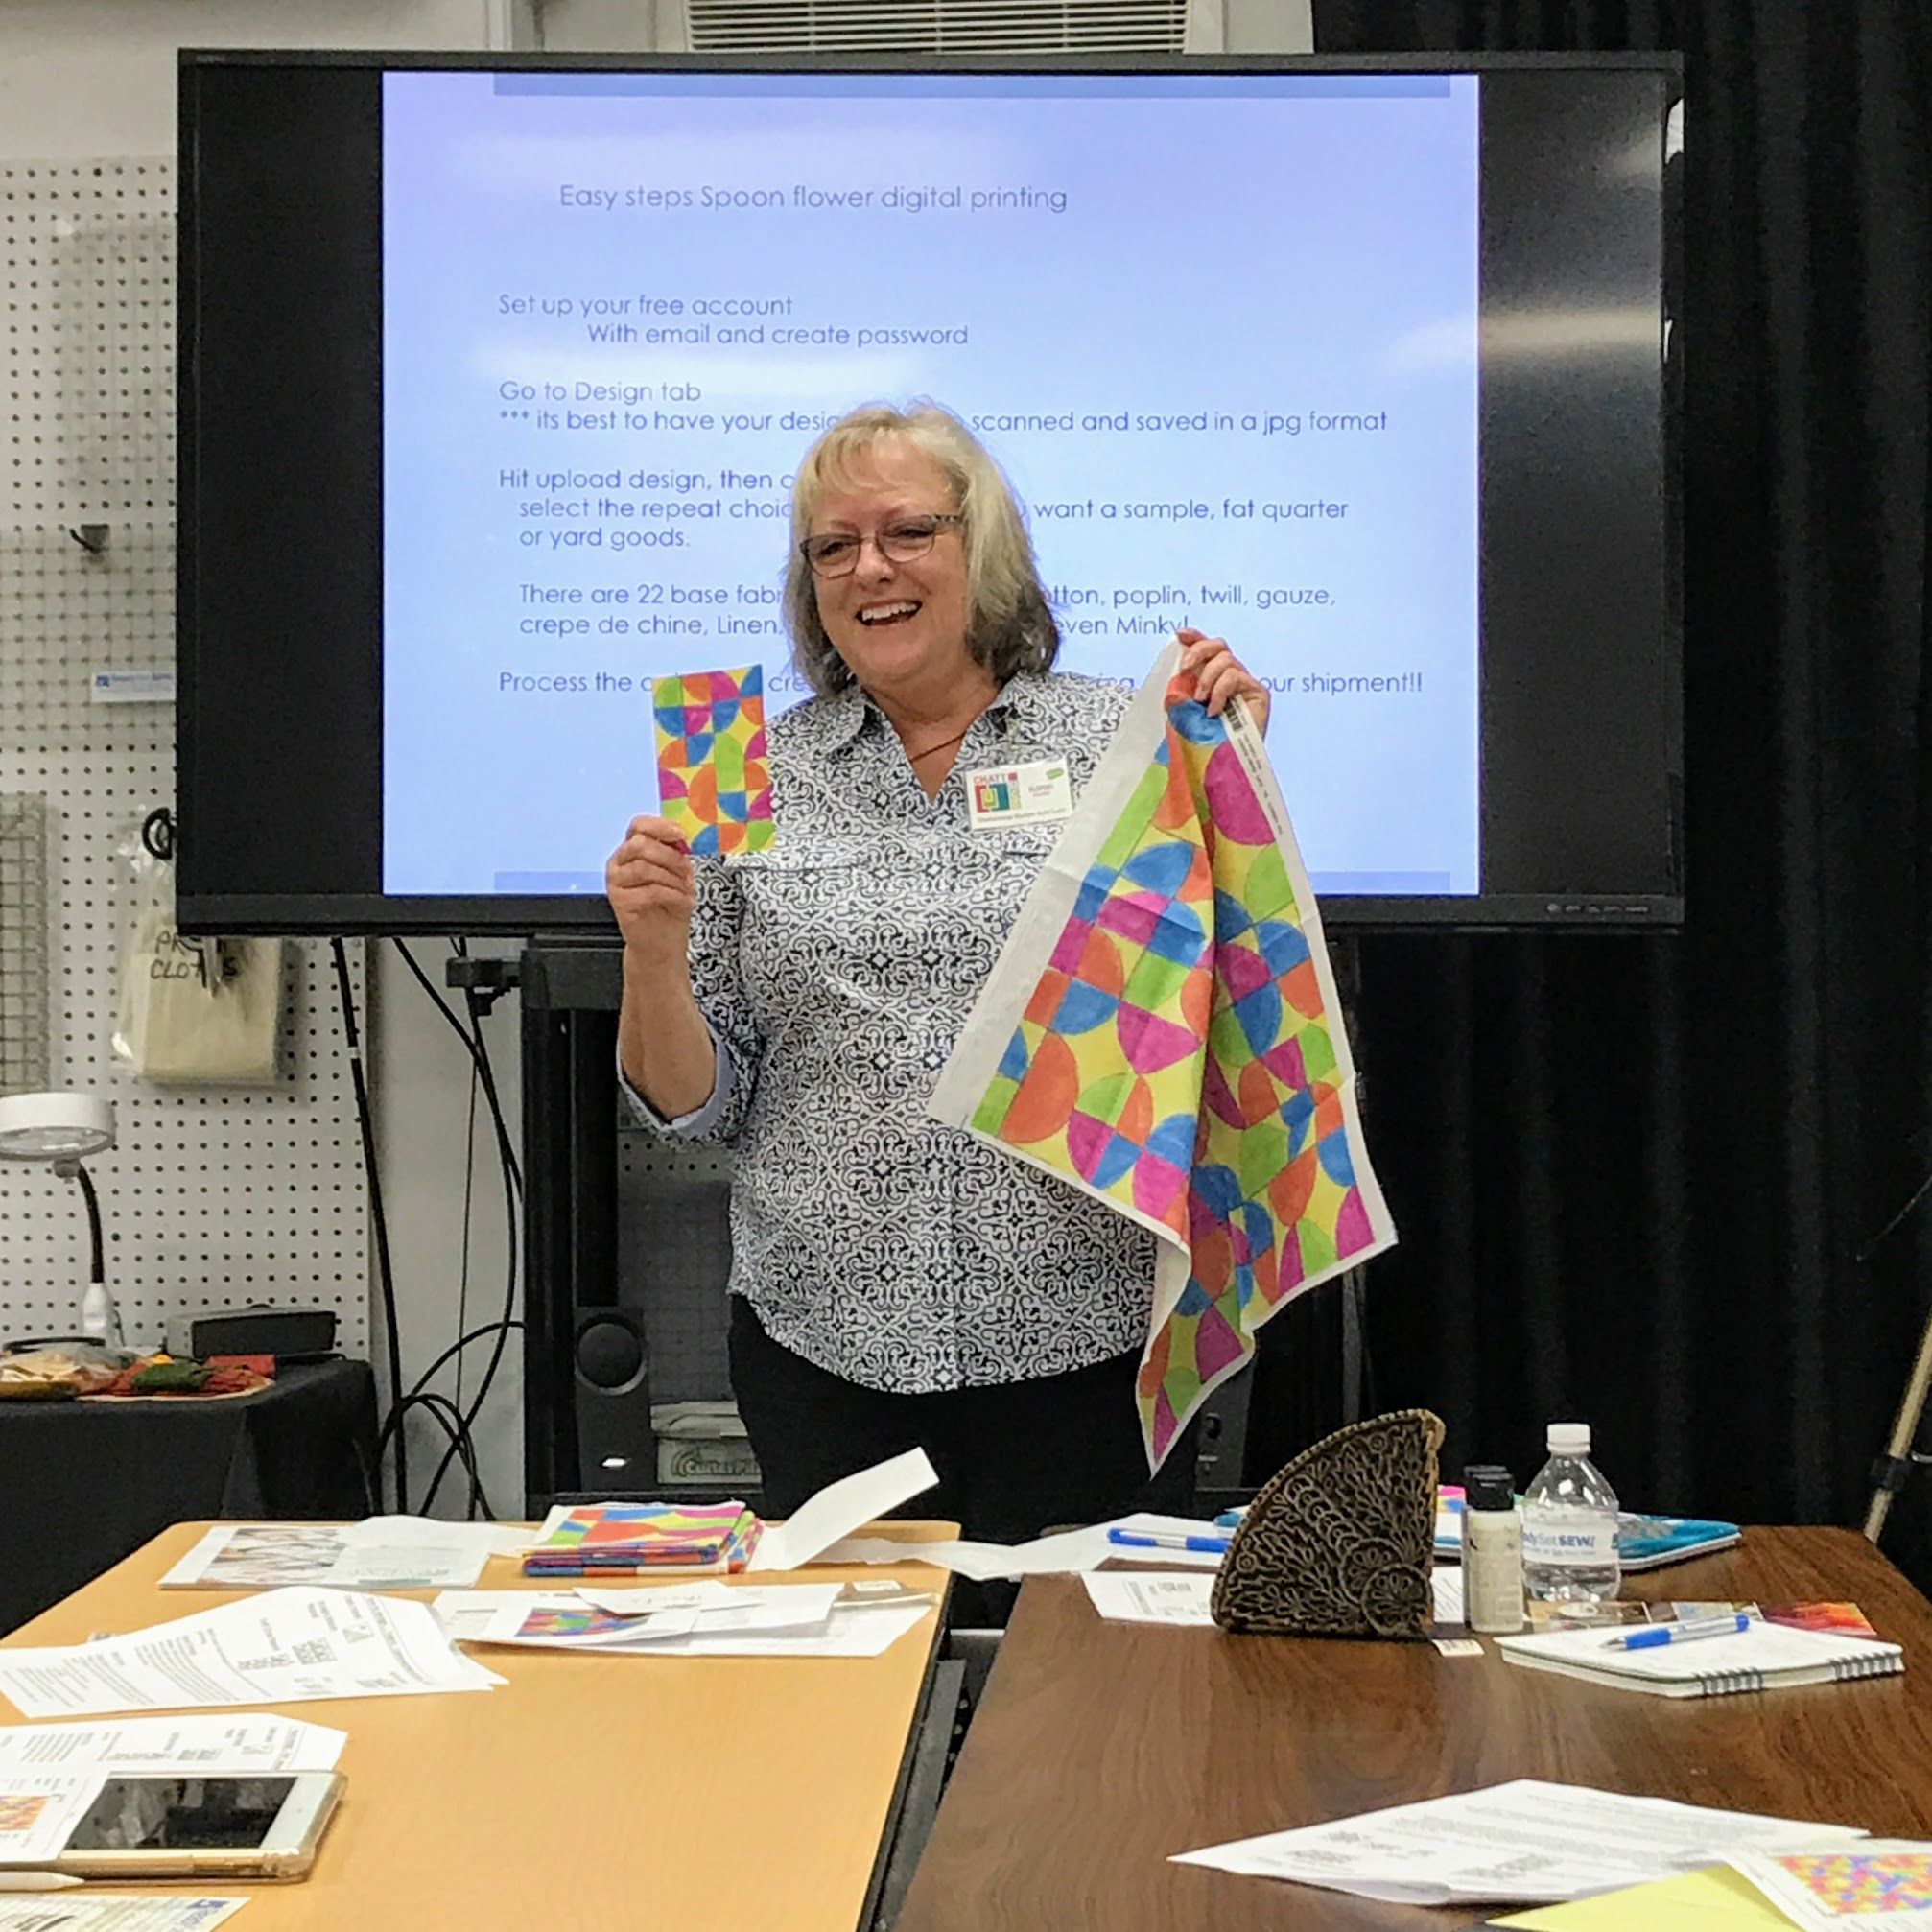 Karen Downer painted her design by hand on graph paper (left) before she converted it to a digital file to print on fabric via Spoonflower (right).